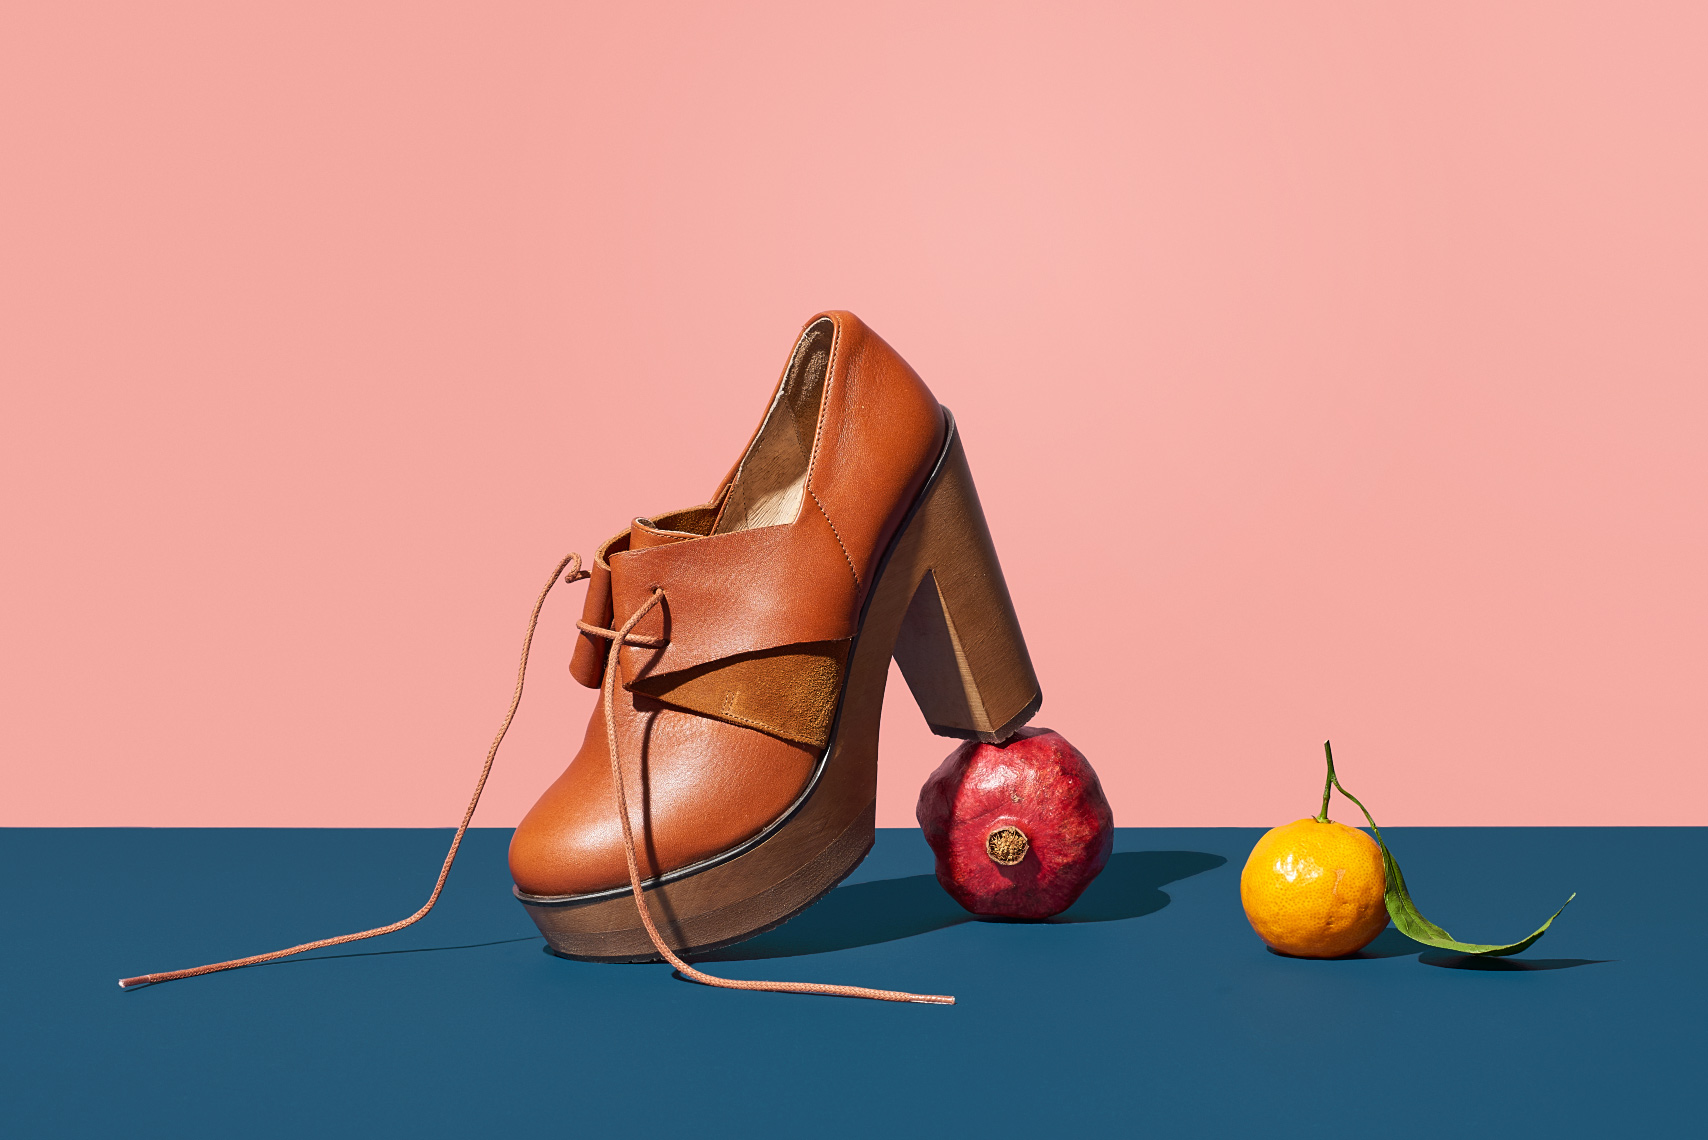 leather Cubanas Shoes with pomegranate and lemon